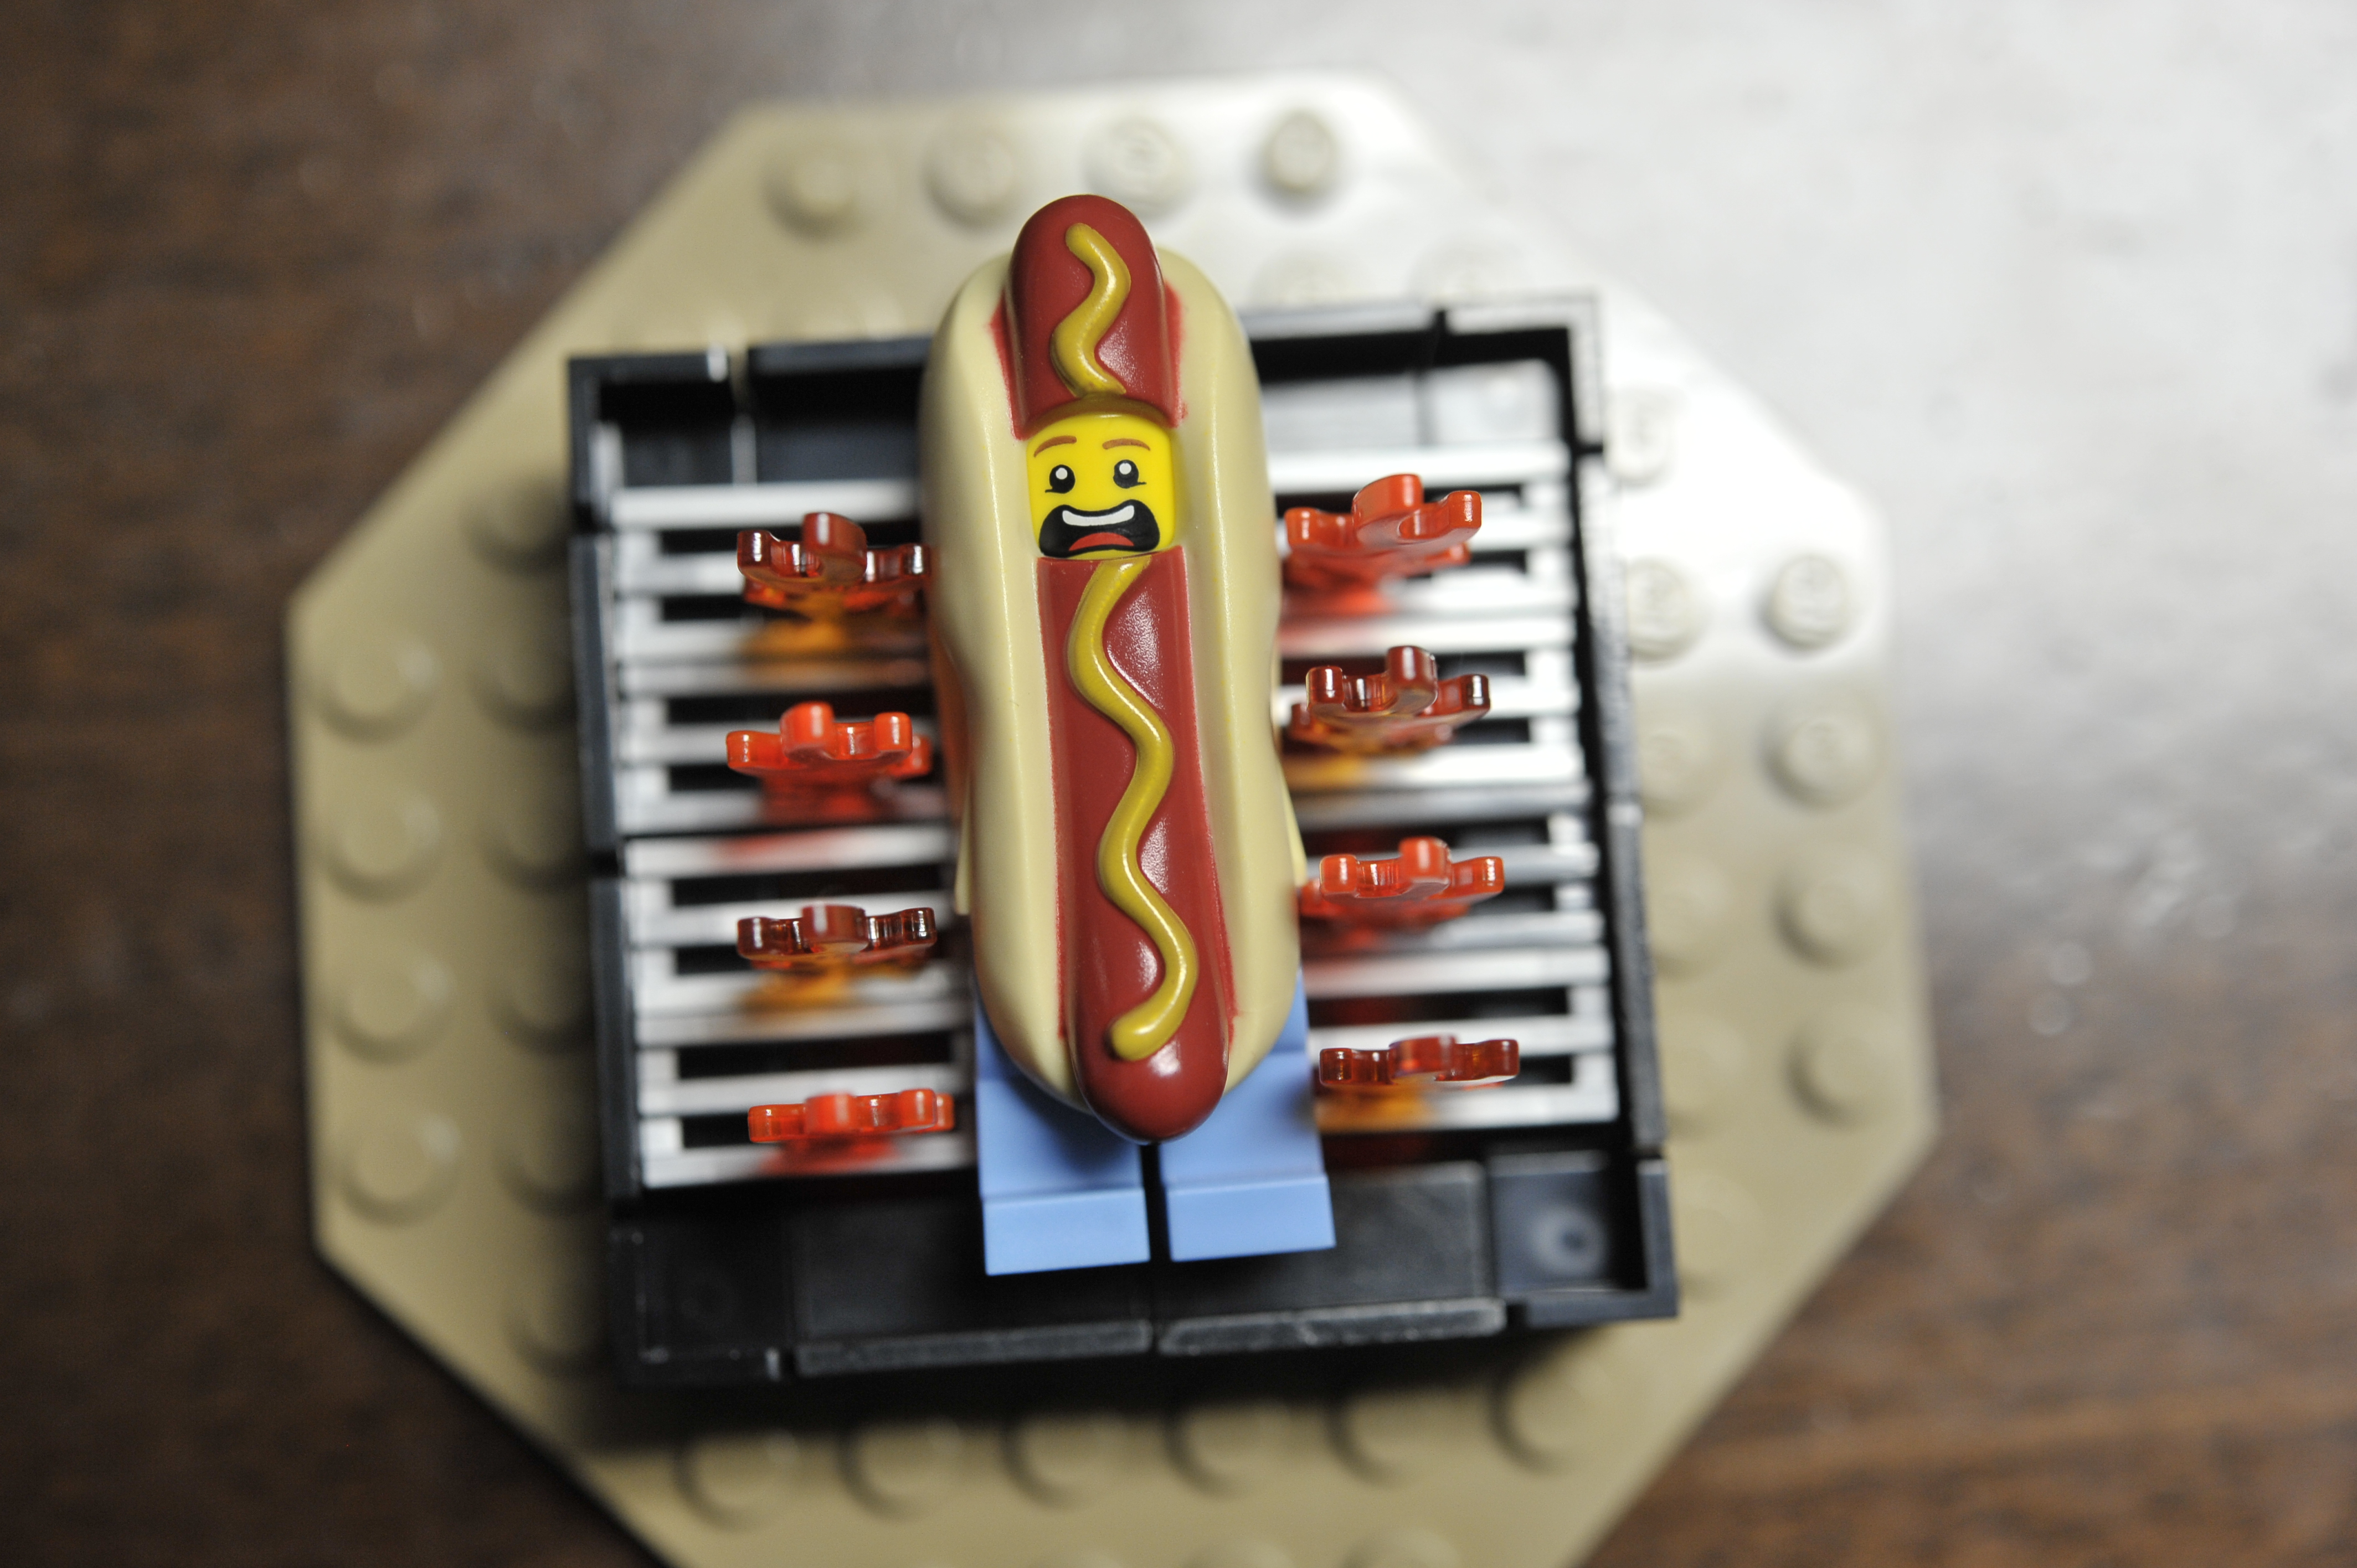 LEGO Hotdog Suit Guy by The Allergy Chef